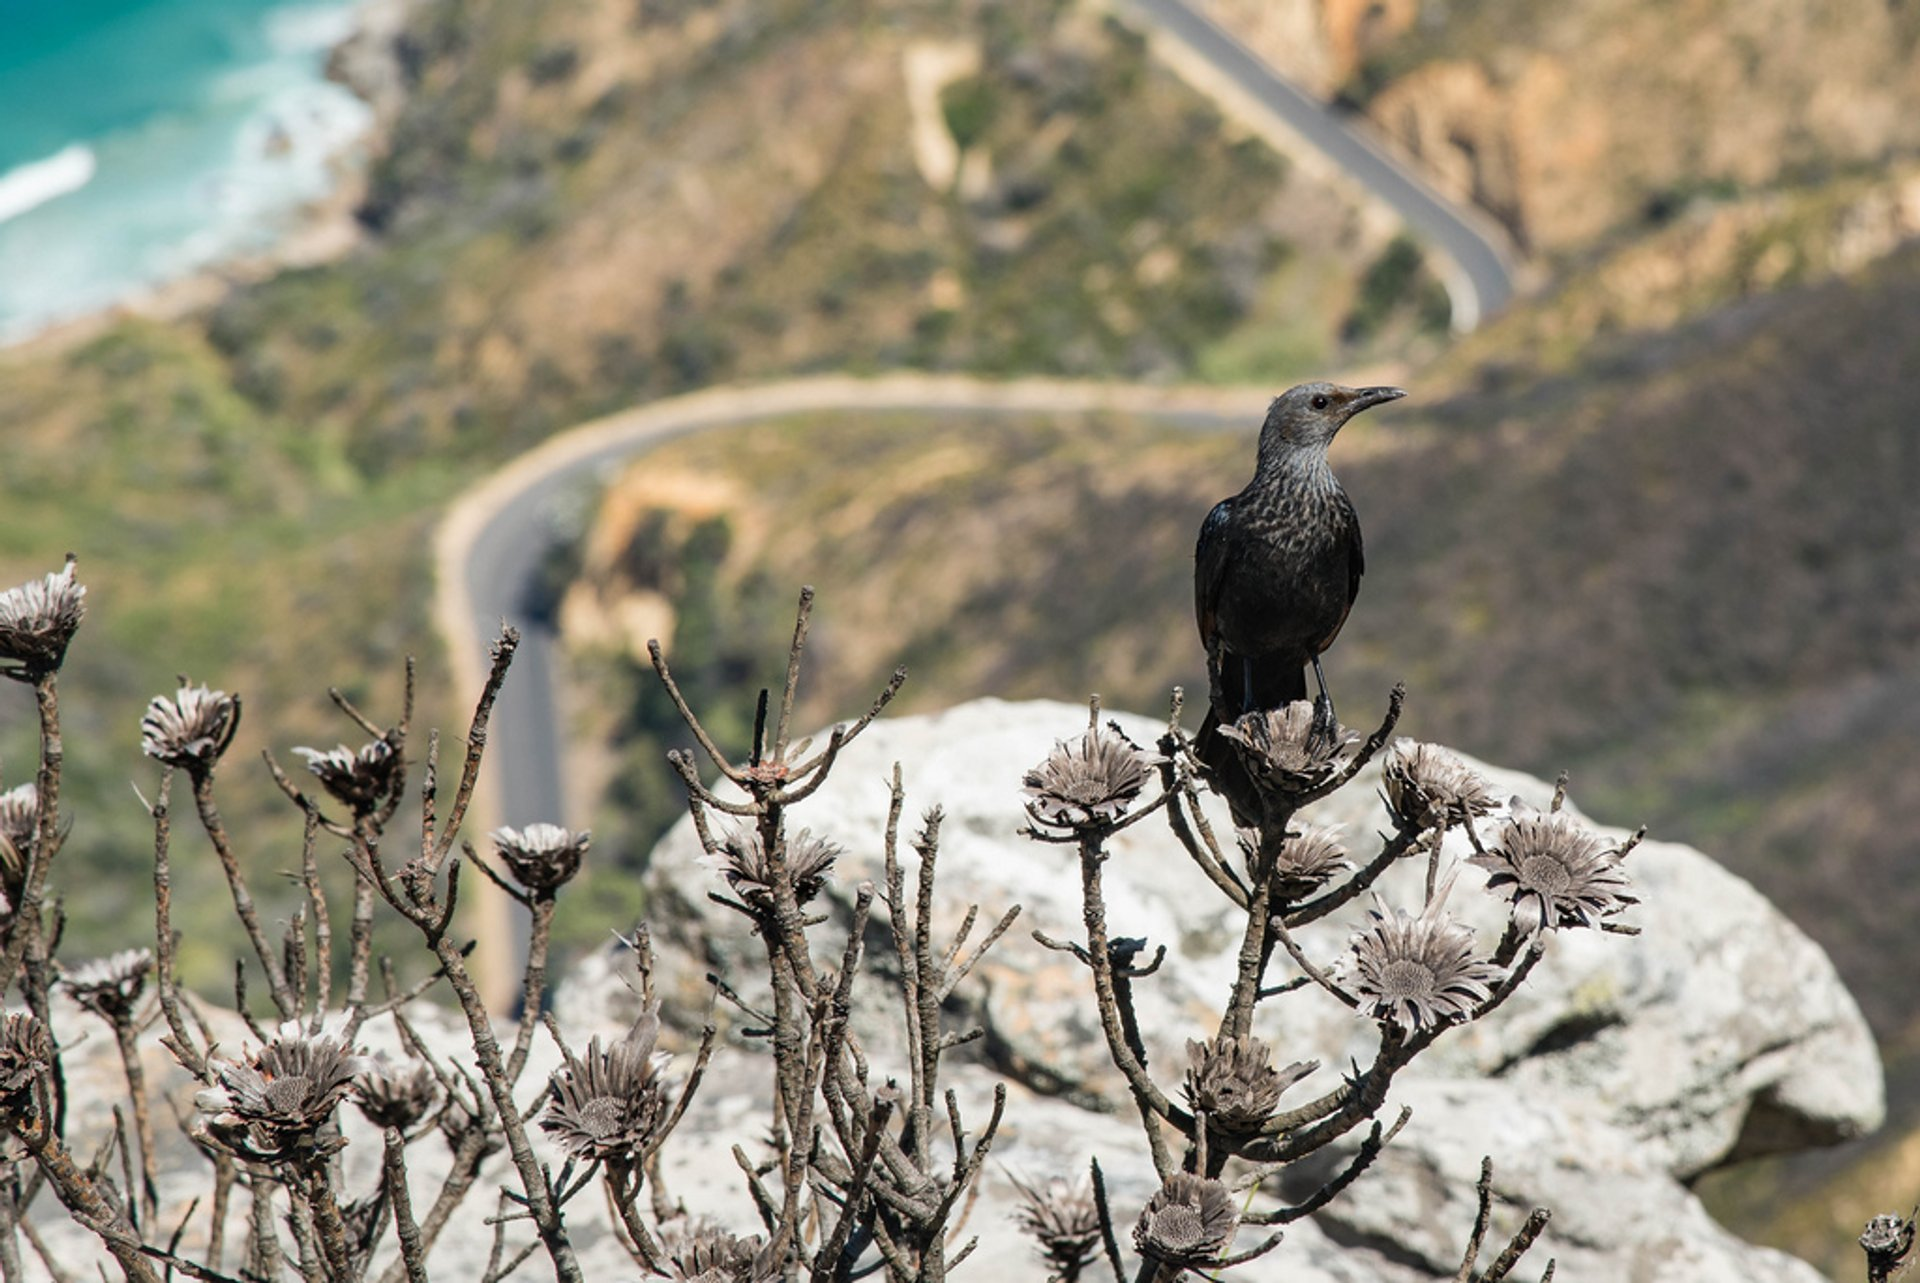 Bird over the Chapman's Peak Drive 2020